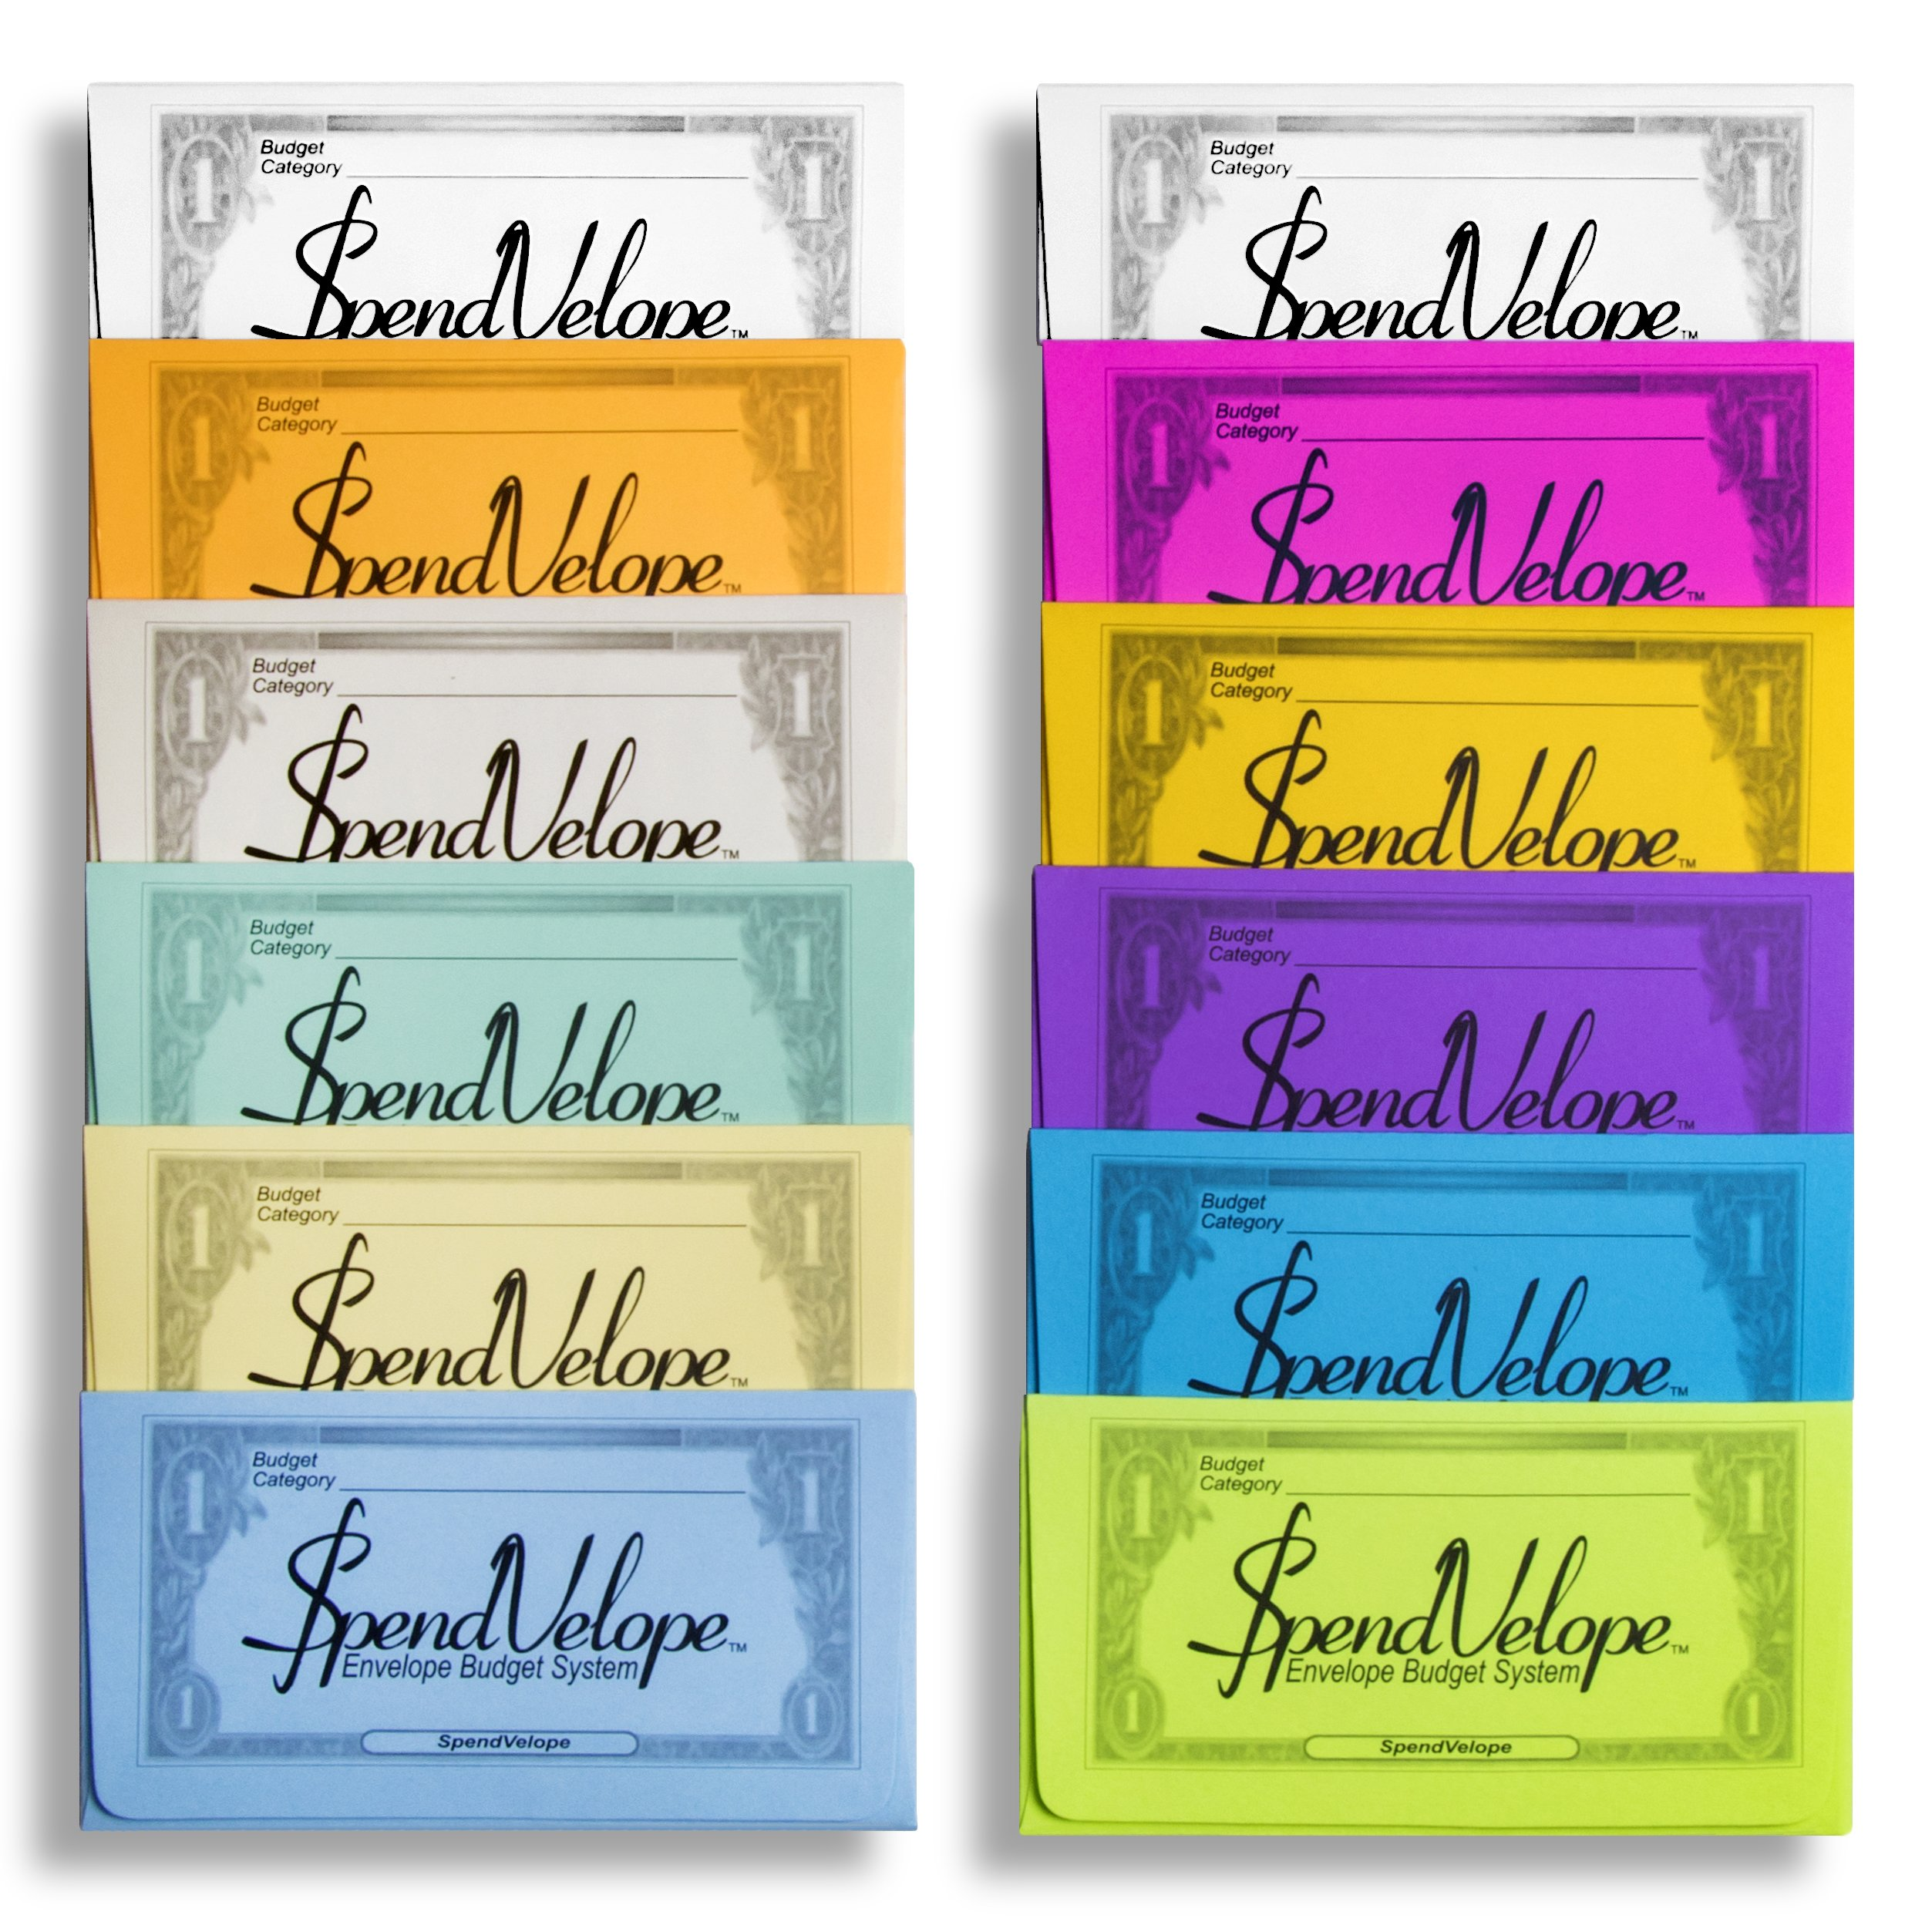 SpendVelope Envelope Budget System – Rainbow Colored – 12 Pack